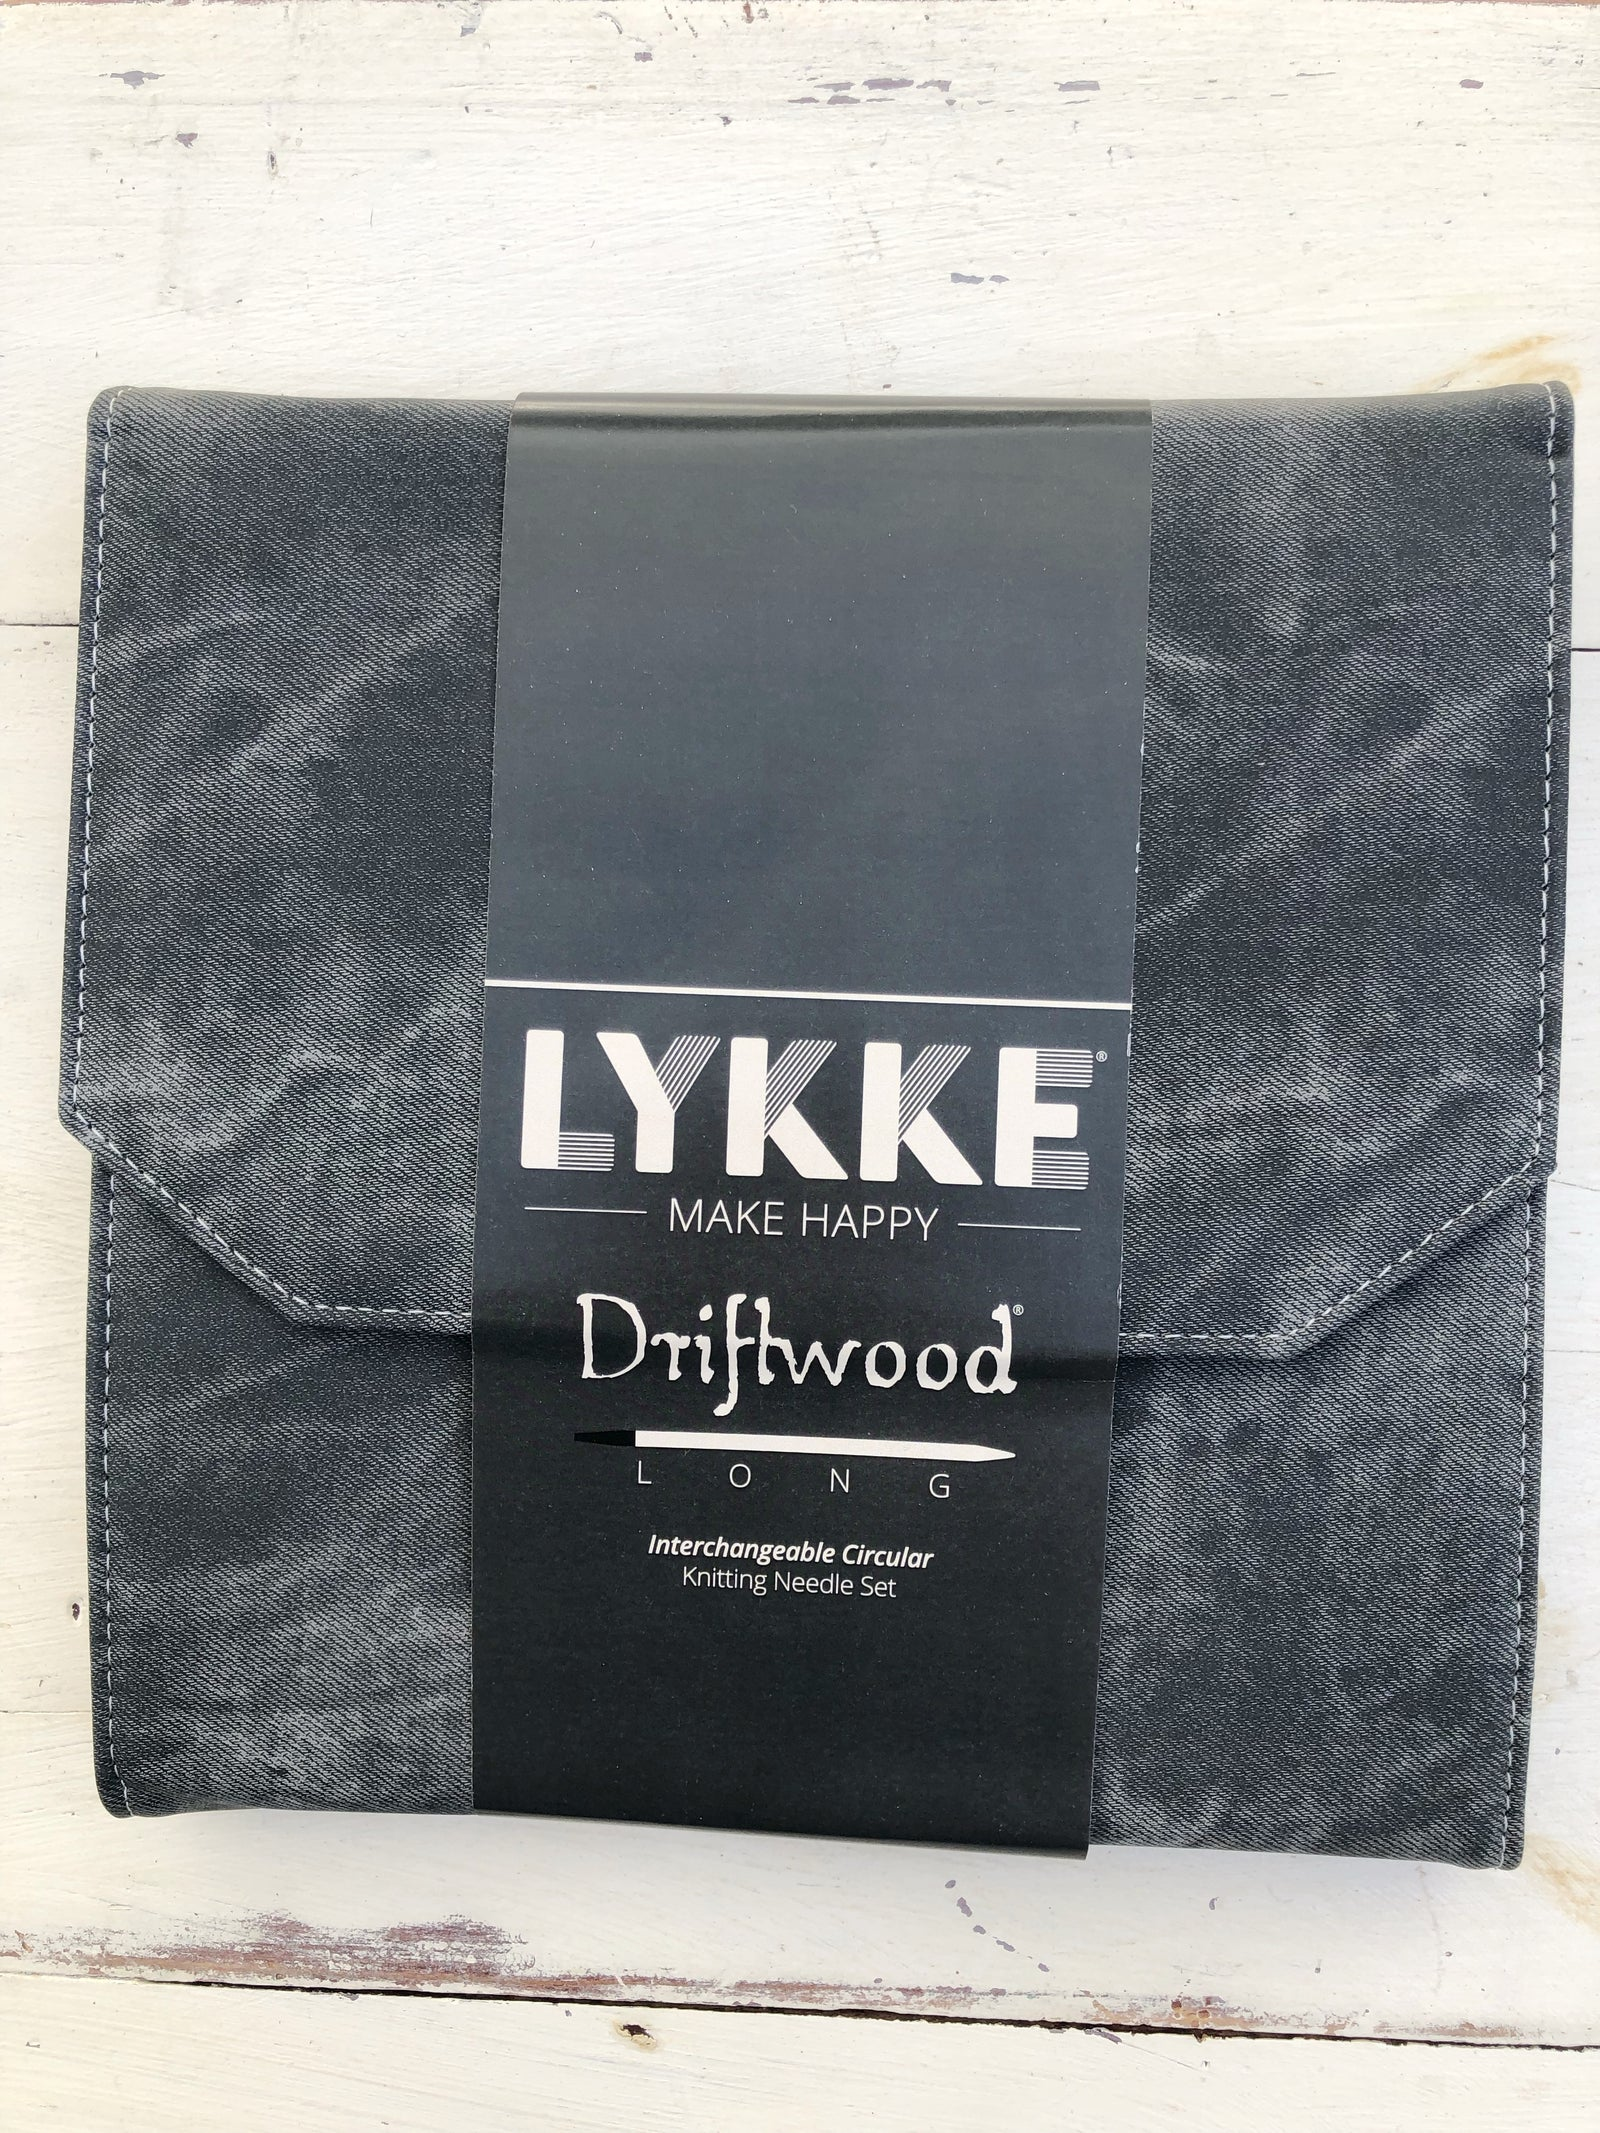 Lykke Driftwood LONG Interchangeable Circular Knitting Needle Set